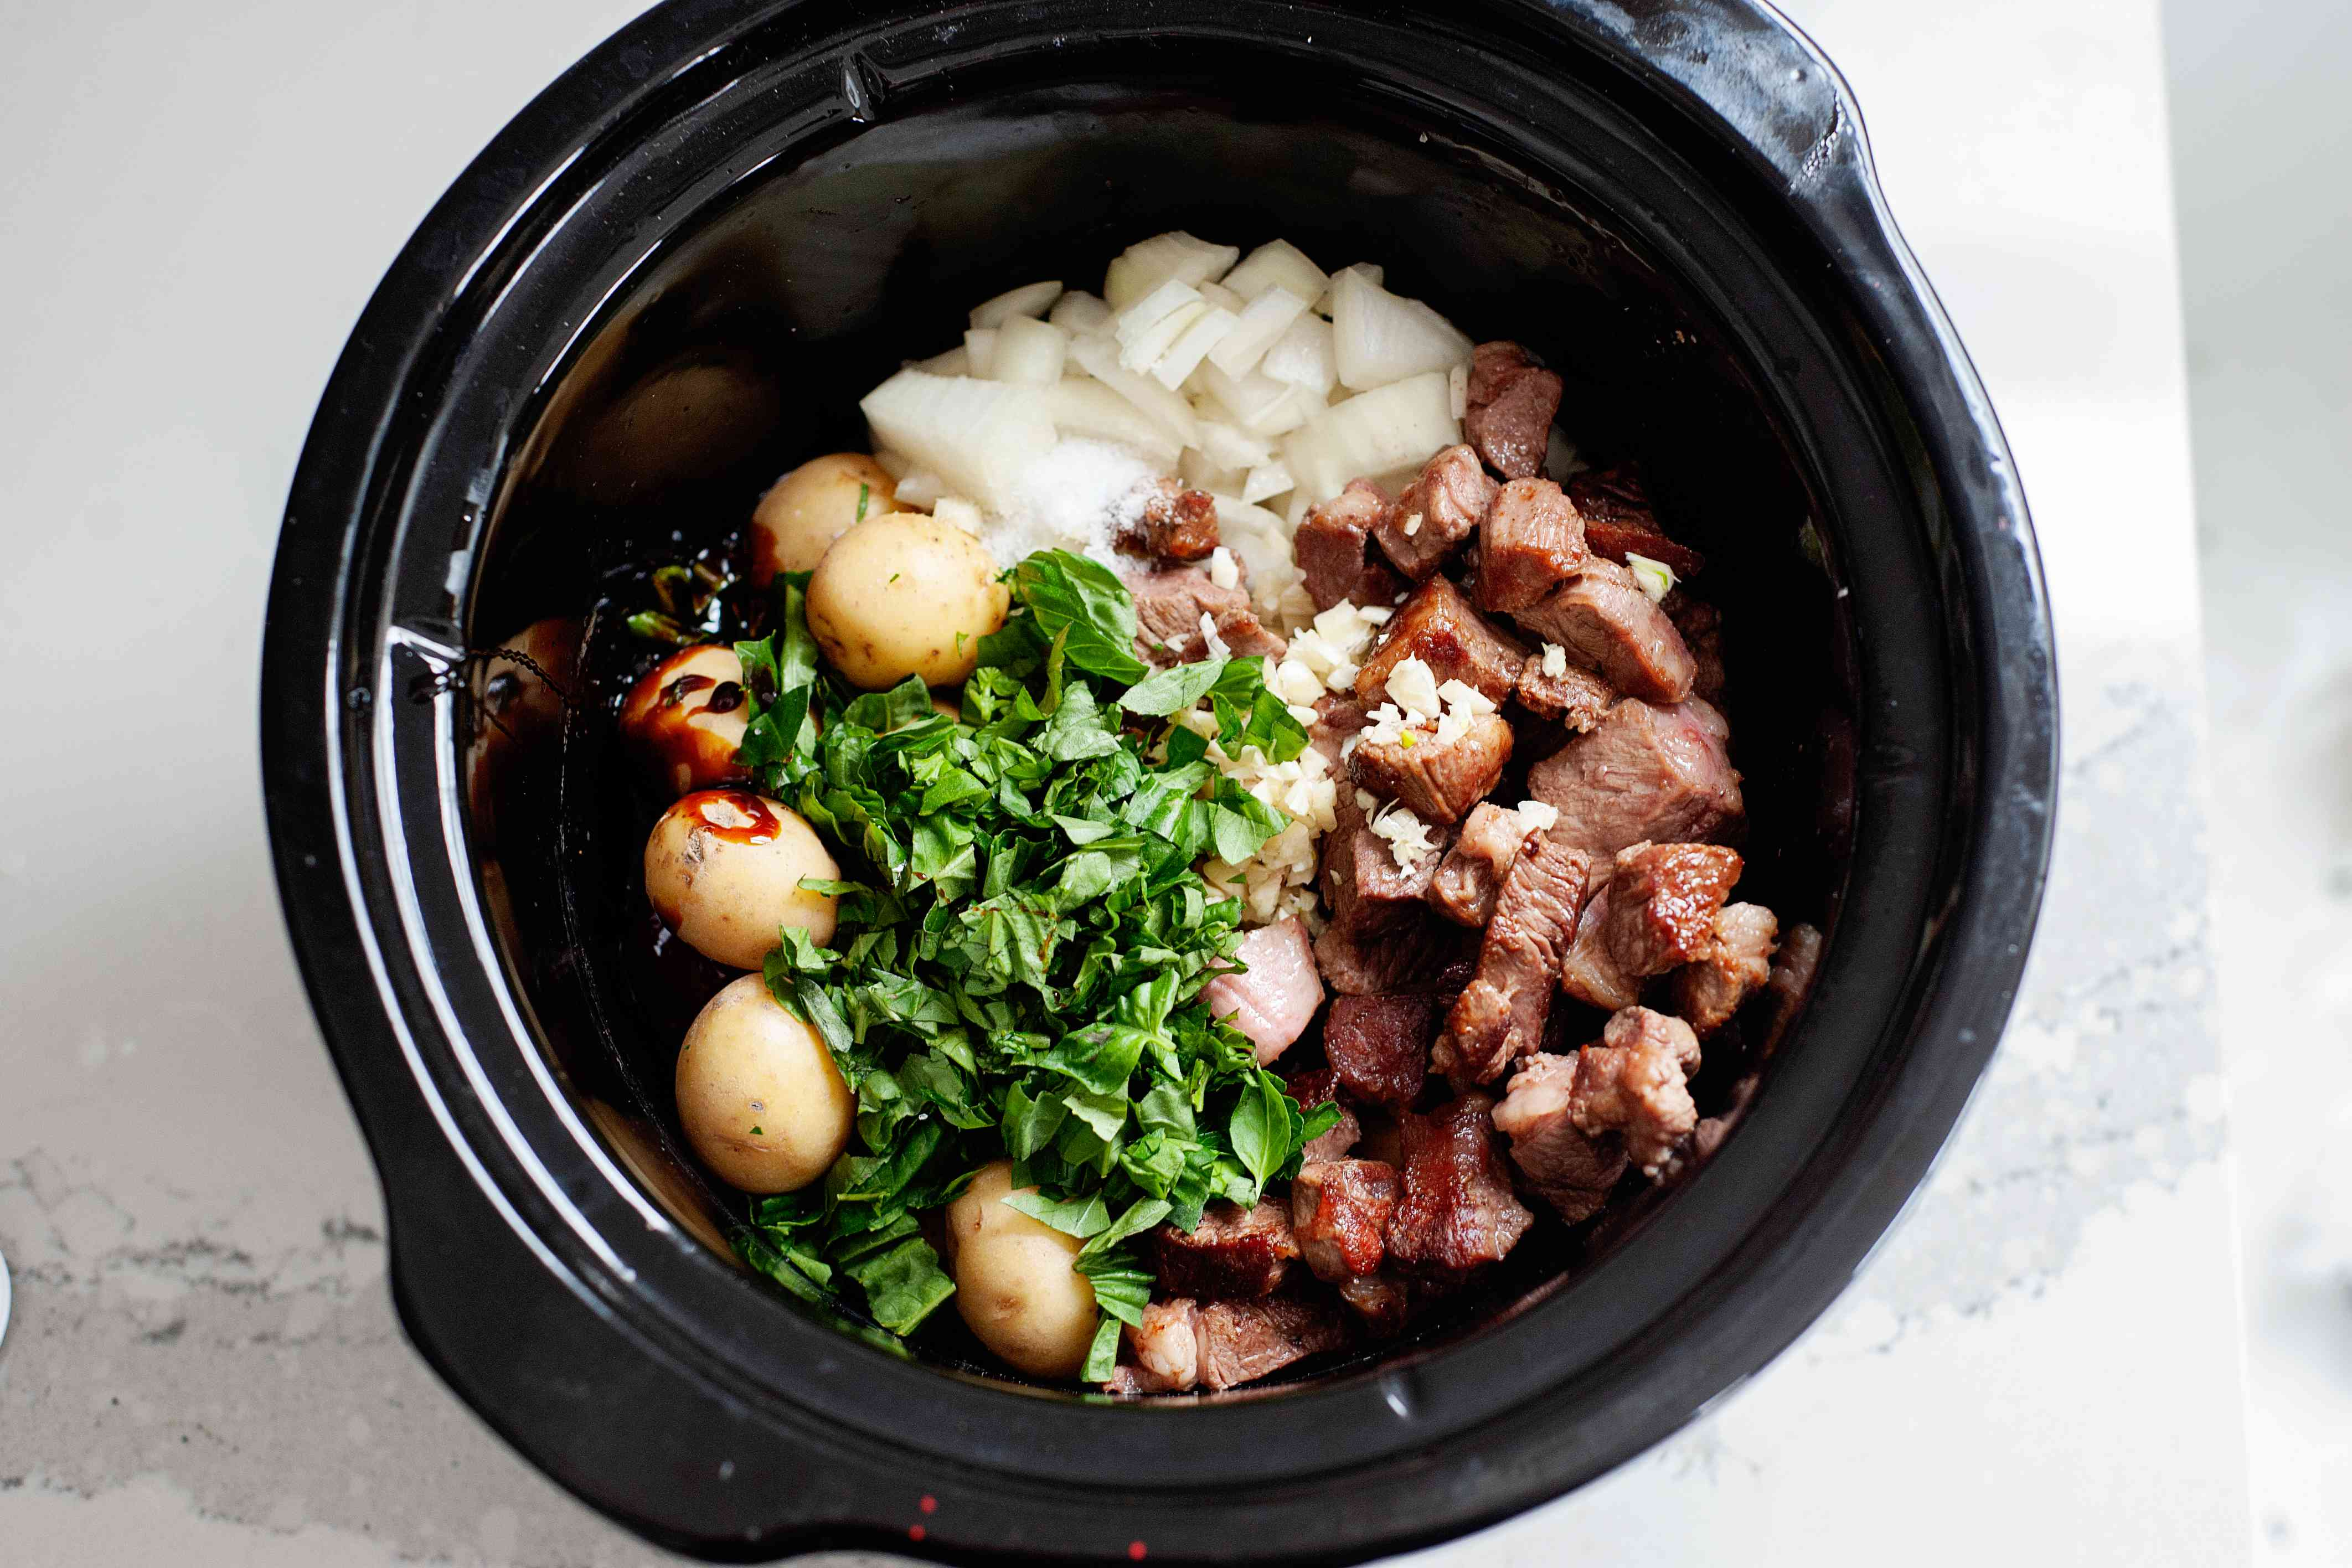 Ingredients for Weekday Lamb Stew inside a slow cooker.